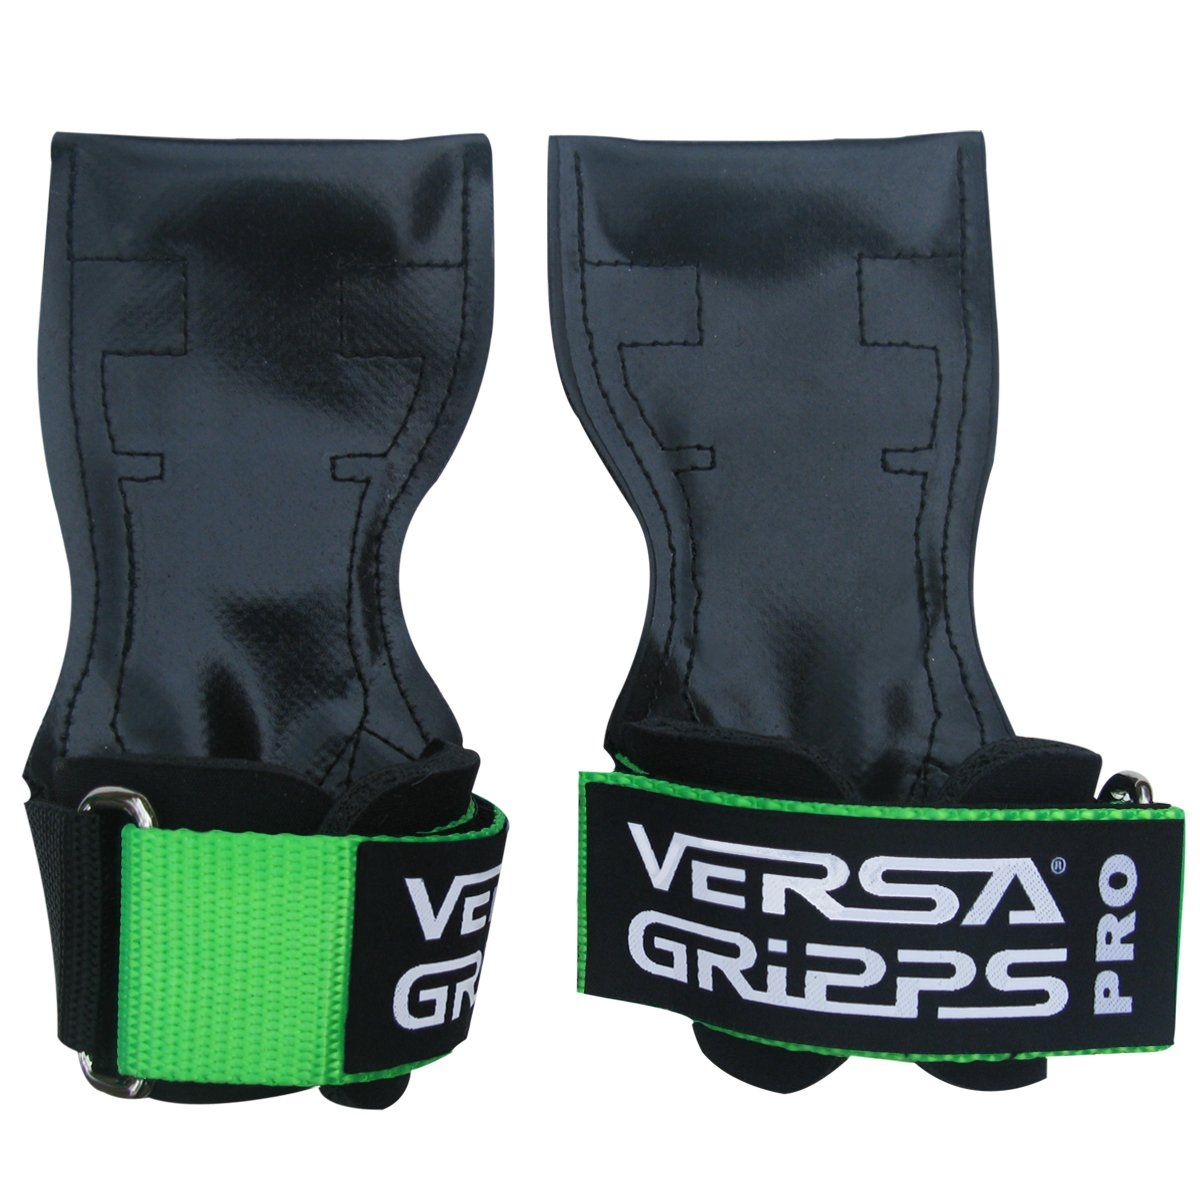 Versa Gripps PRO Authentic. The Best Training Accessory in The World. Made in The USA (SM-Lime)